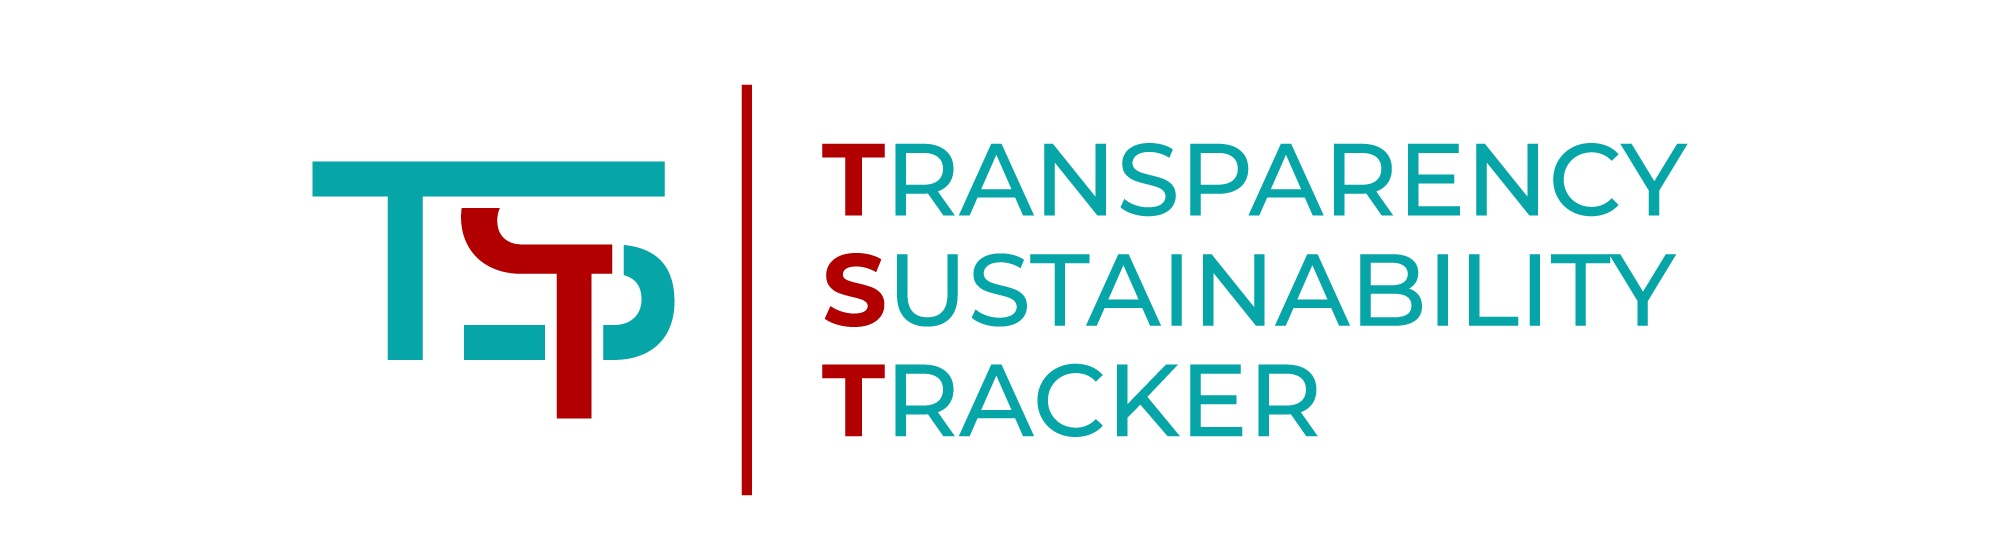 Transparency Sustainability Tracker logo-A